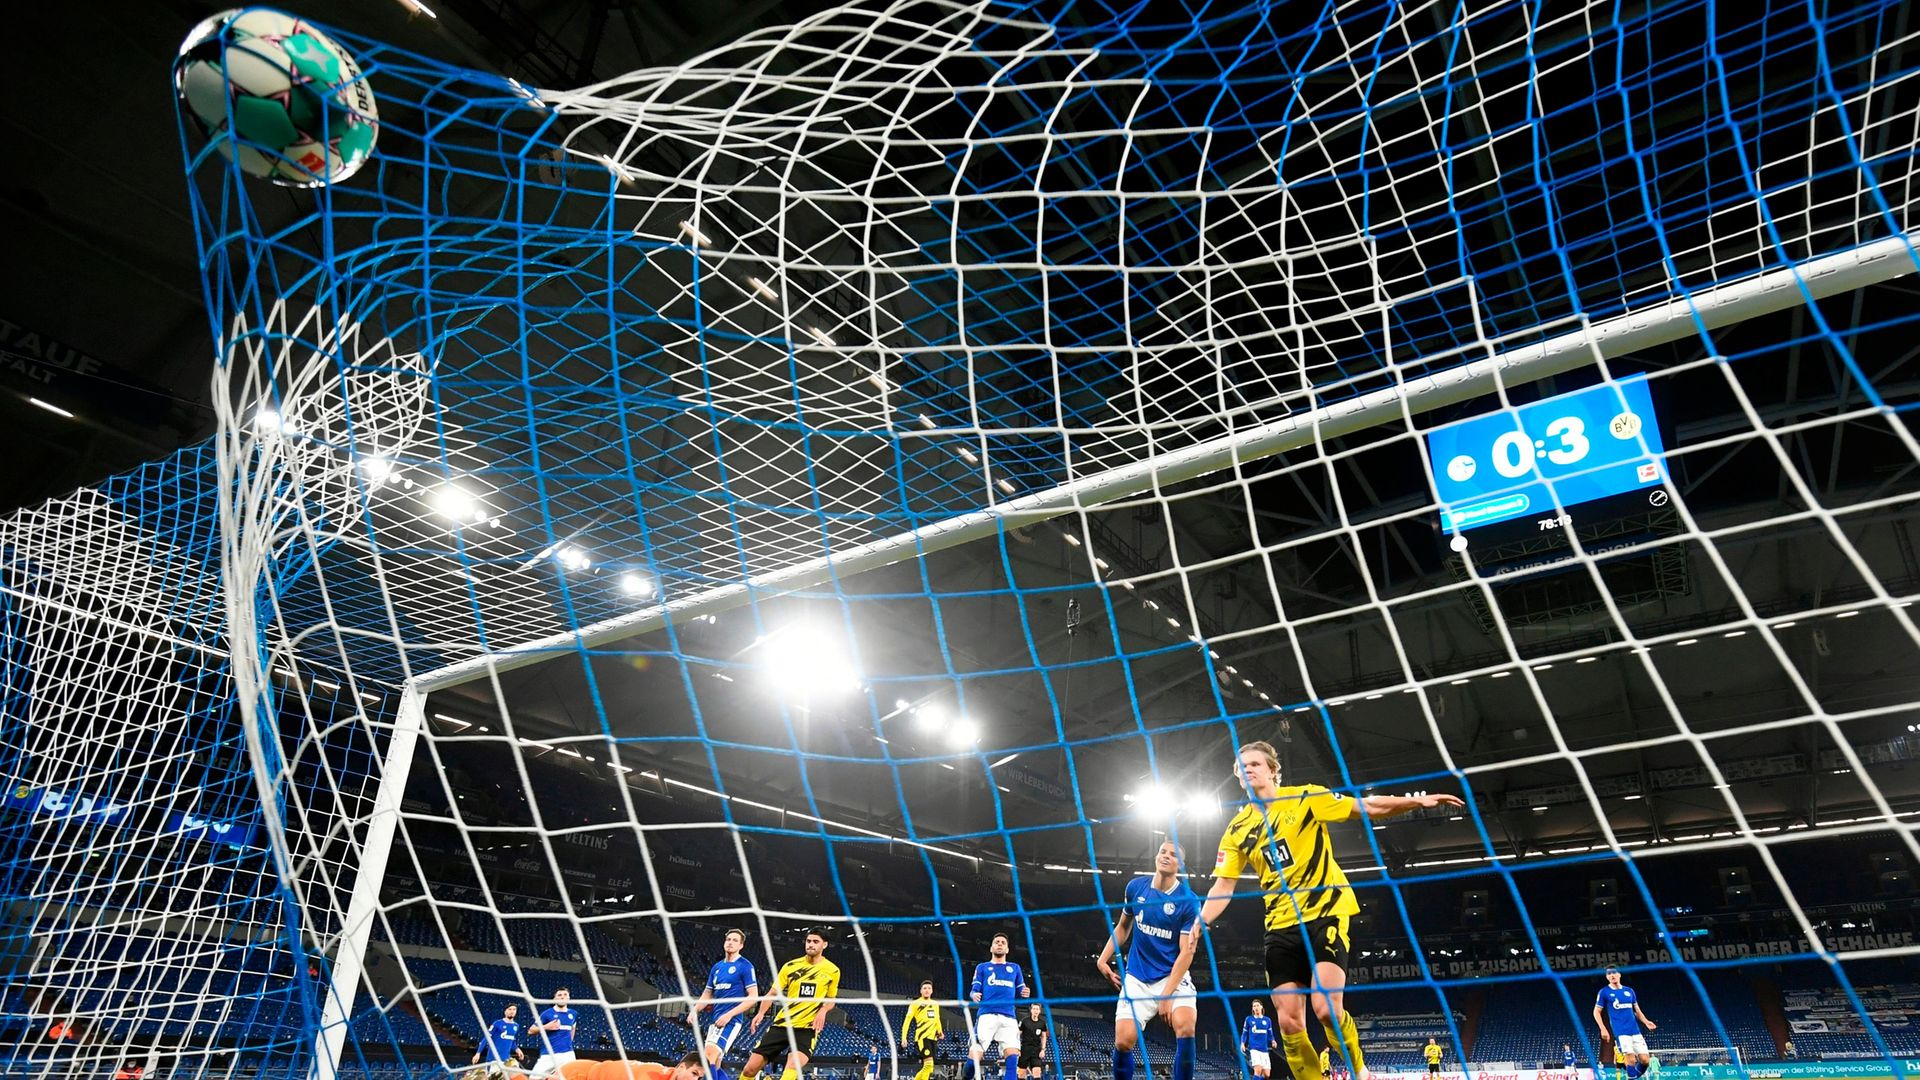 The net bulges as Erling Haaland scores the final goal in Borussia Dortmund's 4-0 win against Schalke 04 on February 20, 2021 - Credit: Ina Fassbender/AFP via Getty Images